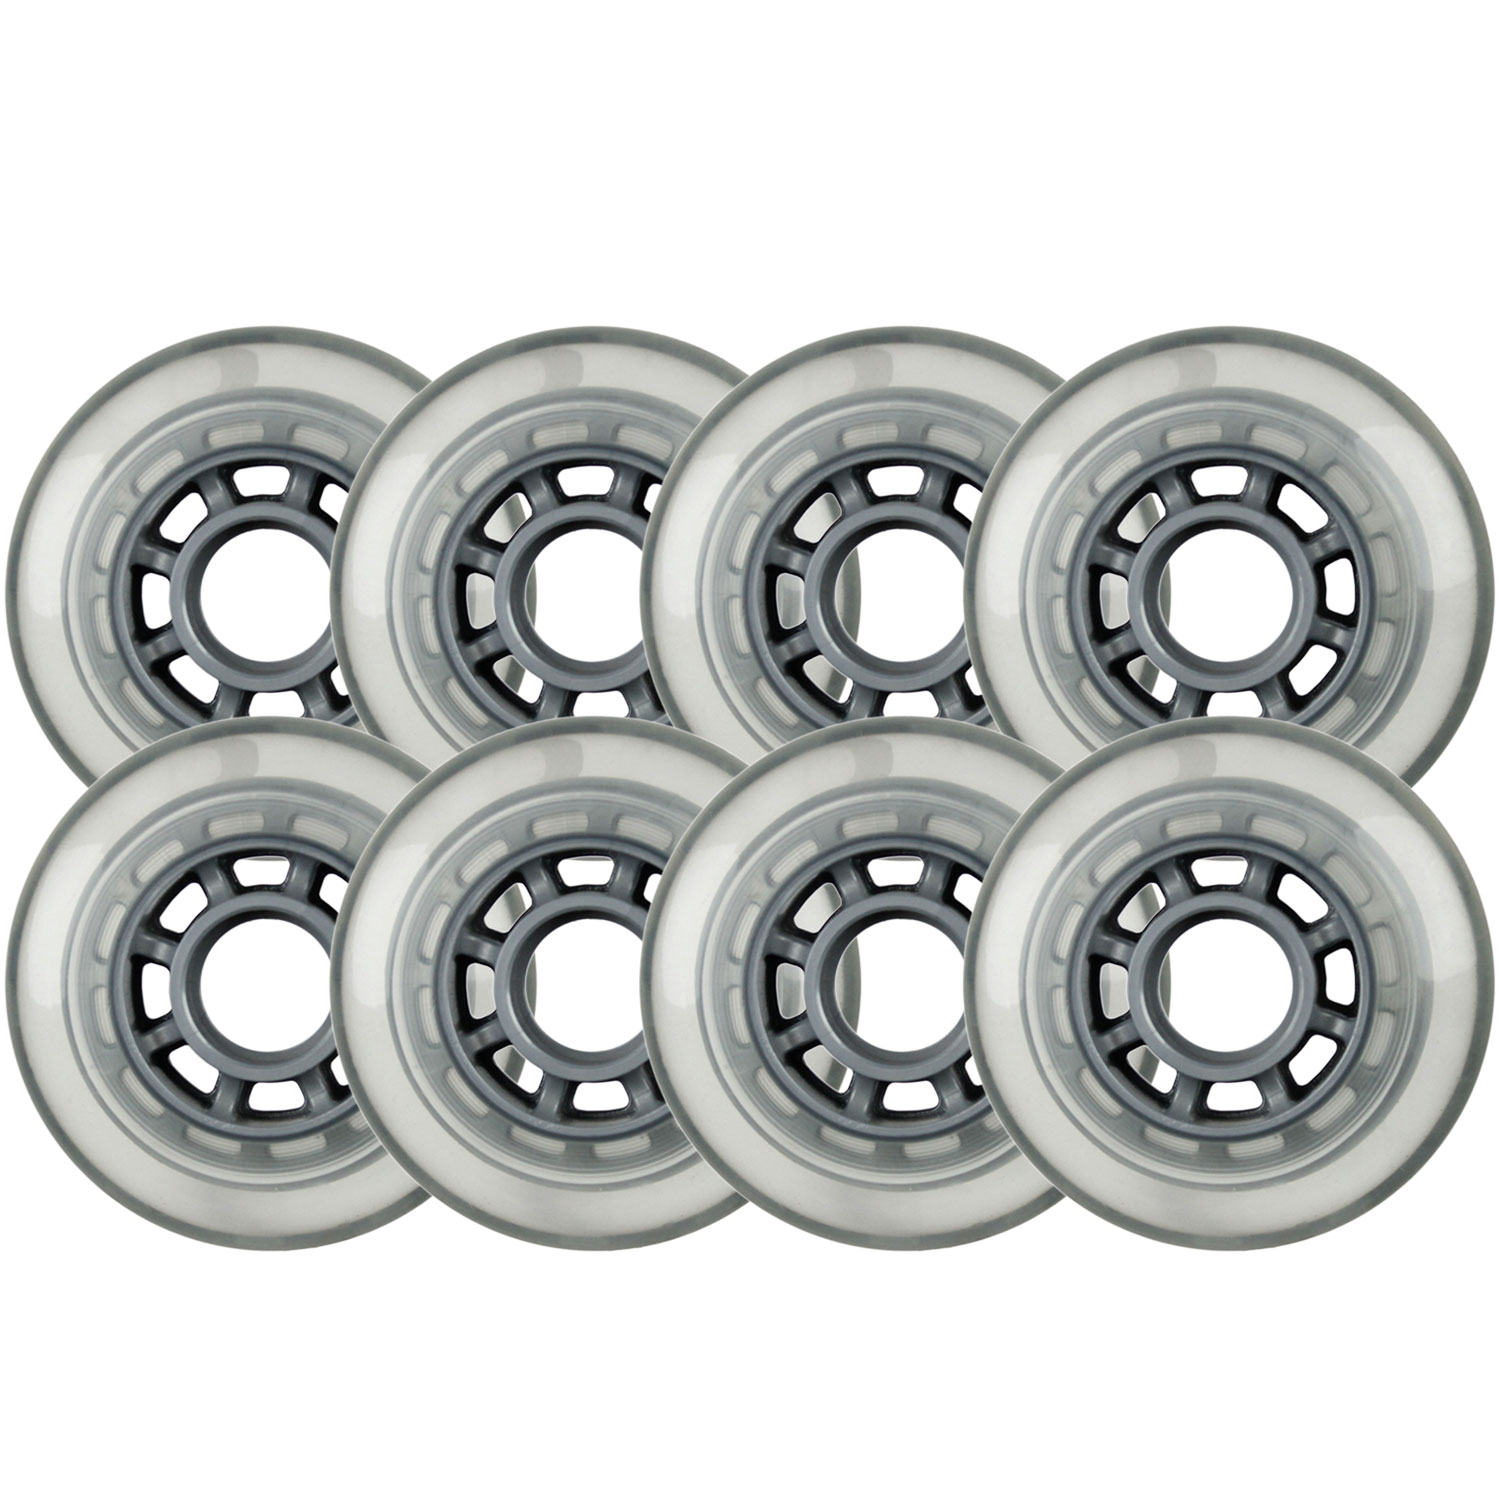 Indoor/Outdoor Inline Skate Wheels Roller Hockey 76mm 78a Clear 8-Pack